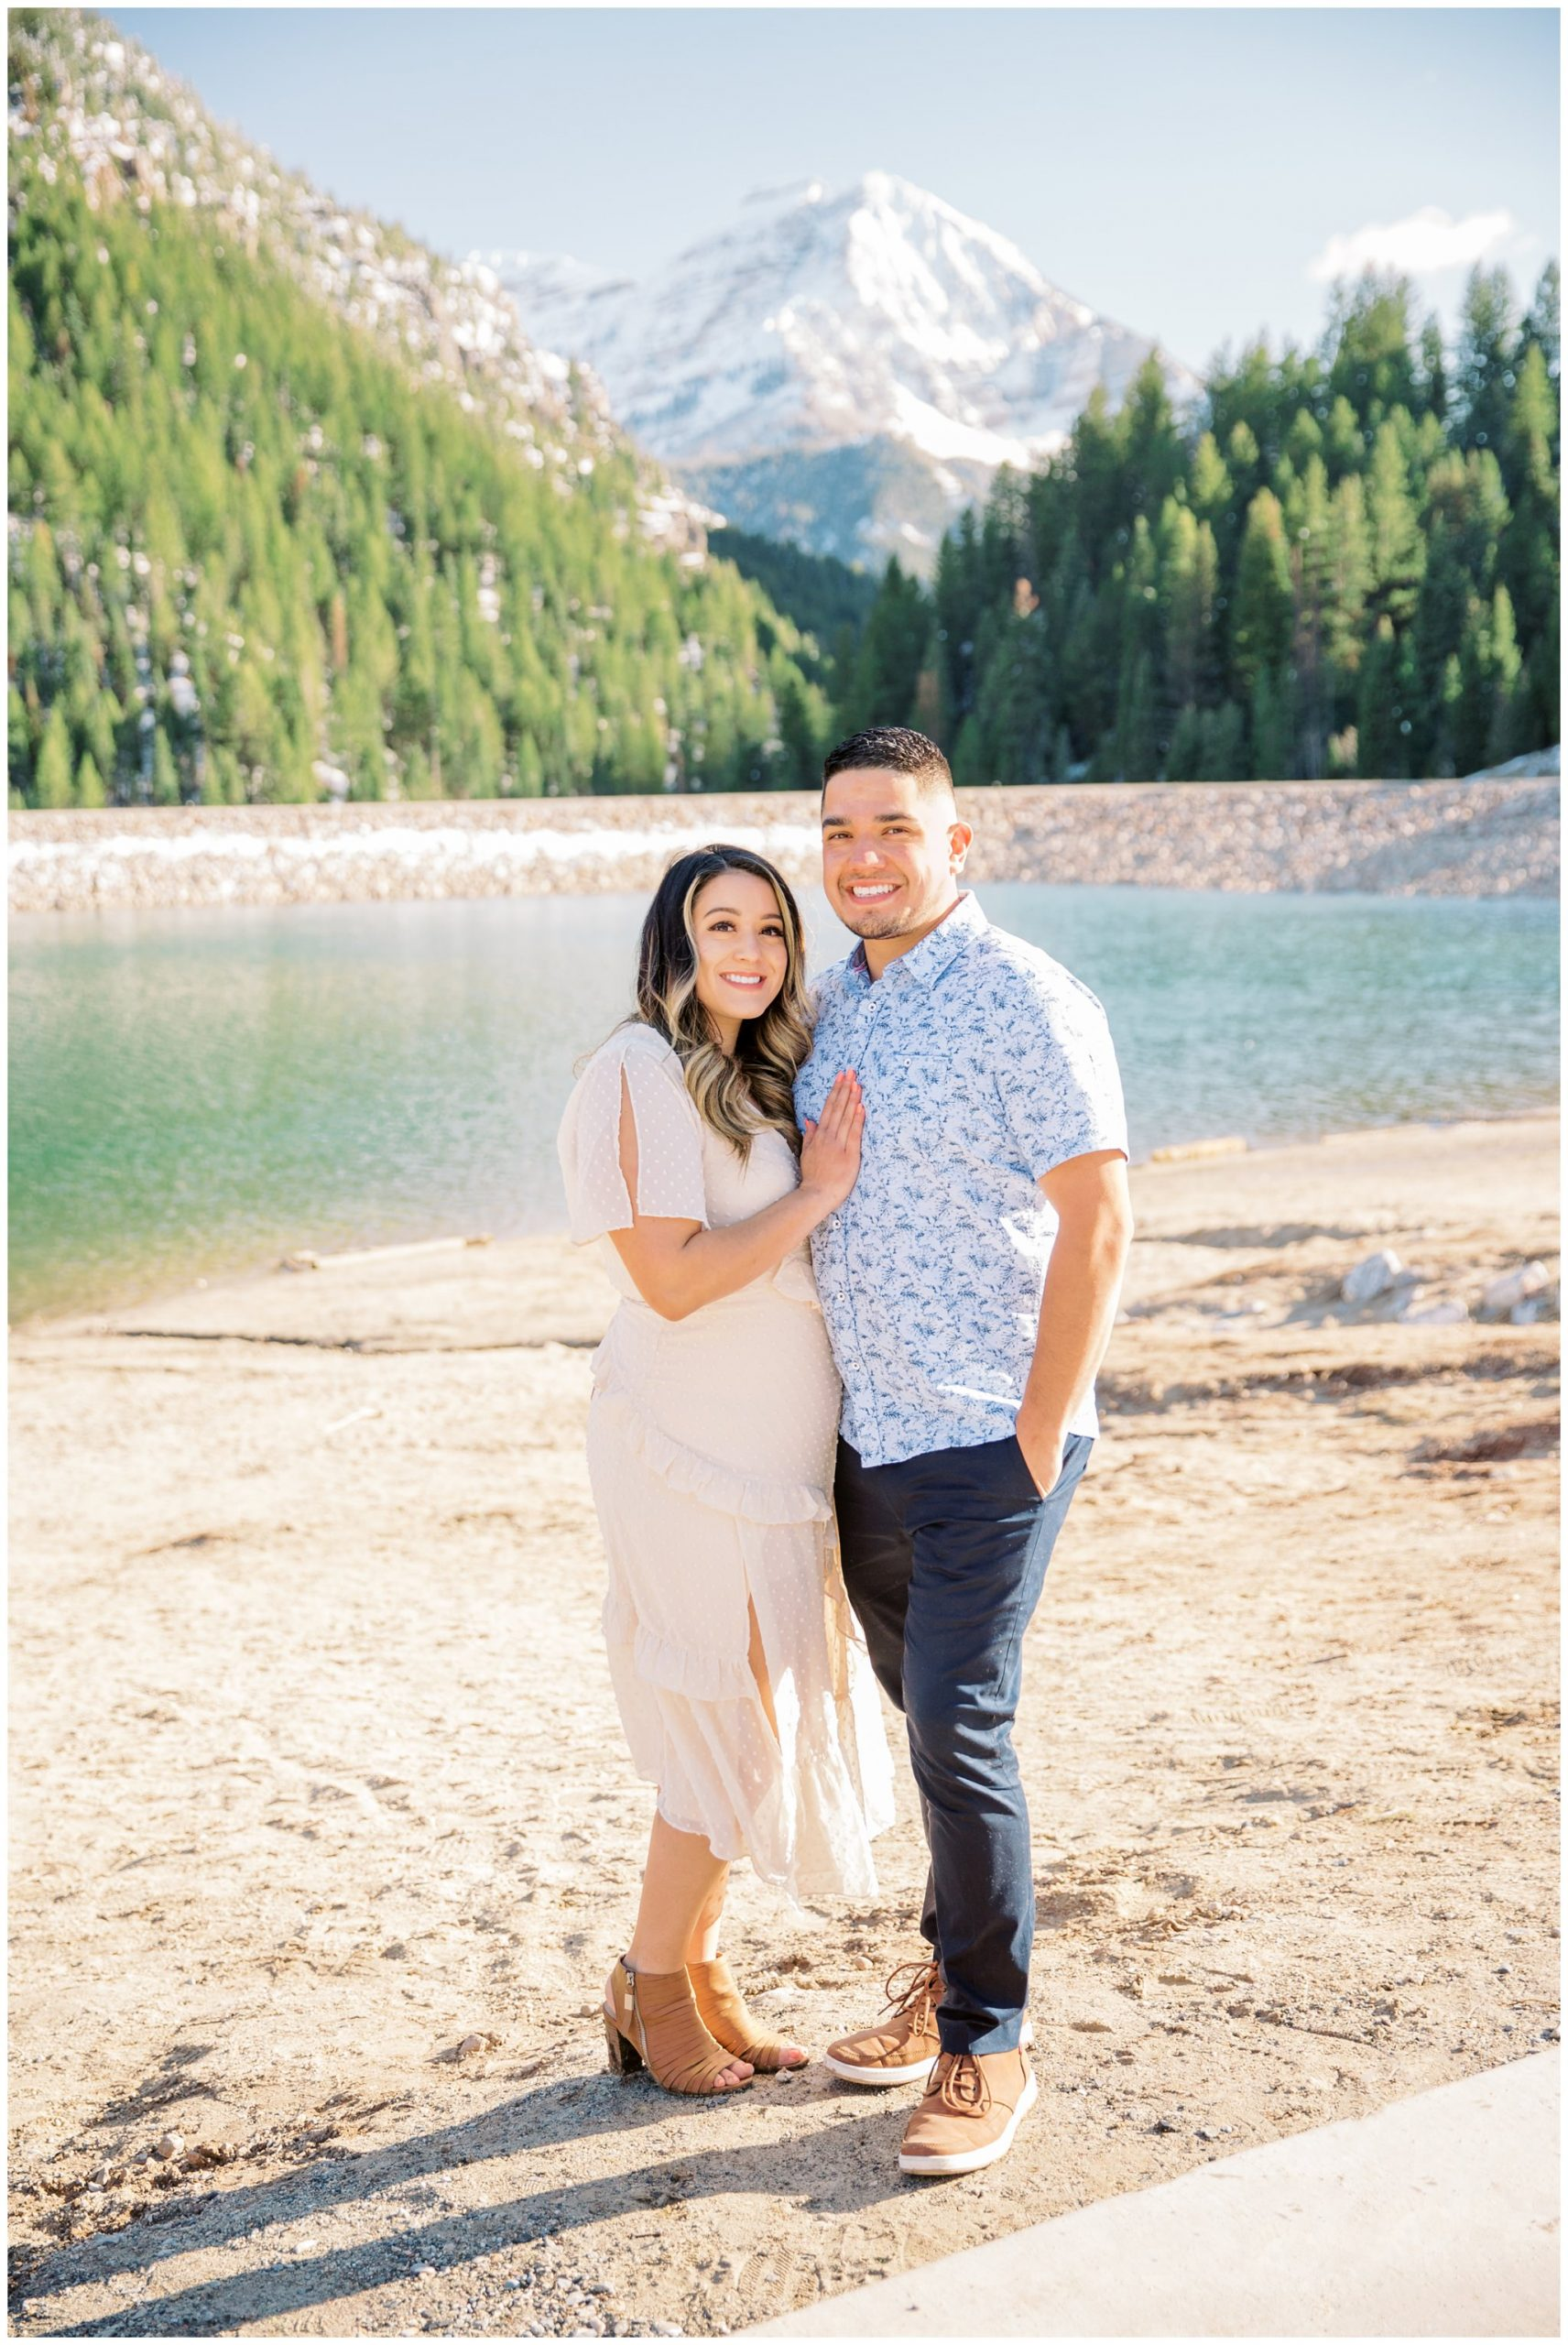 Engagement pictures at tibble fork reservoir in Utah up Provo Canyon